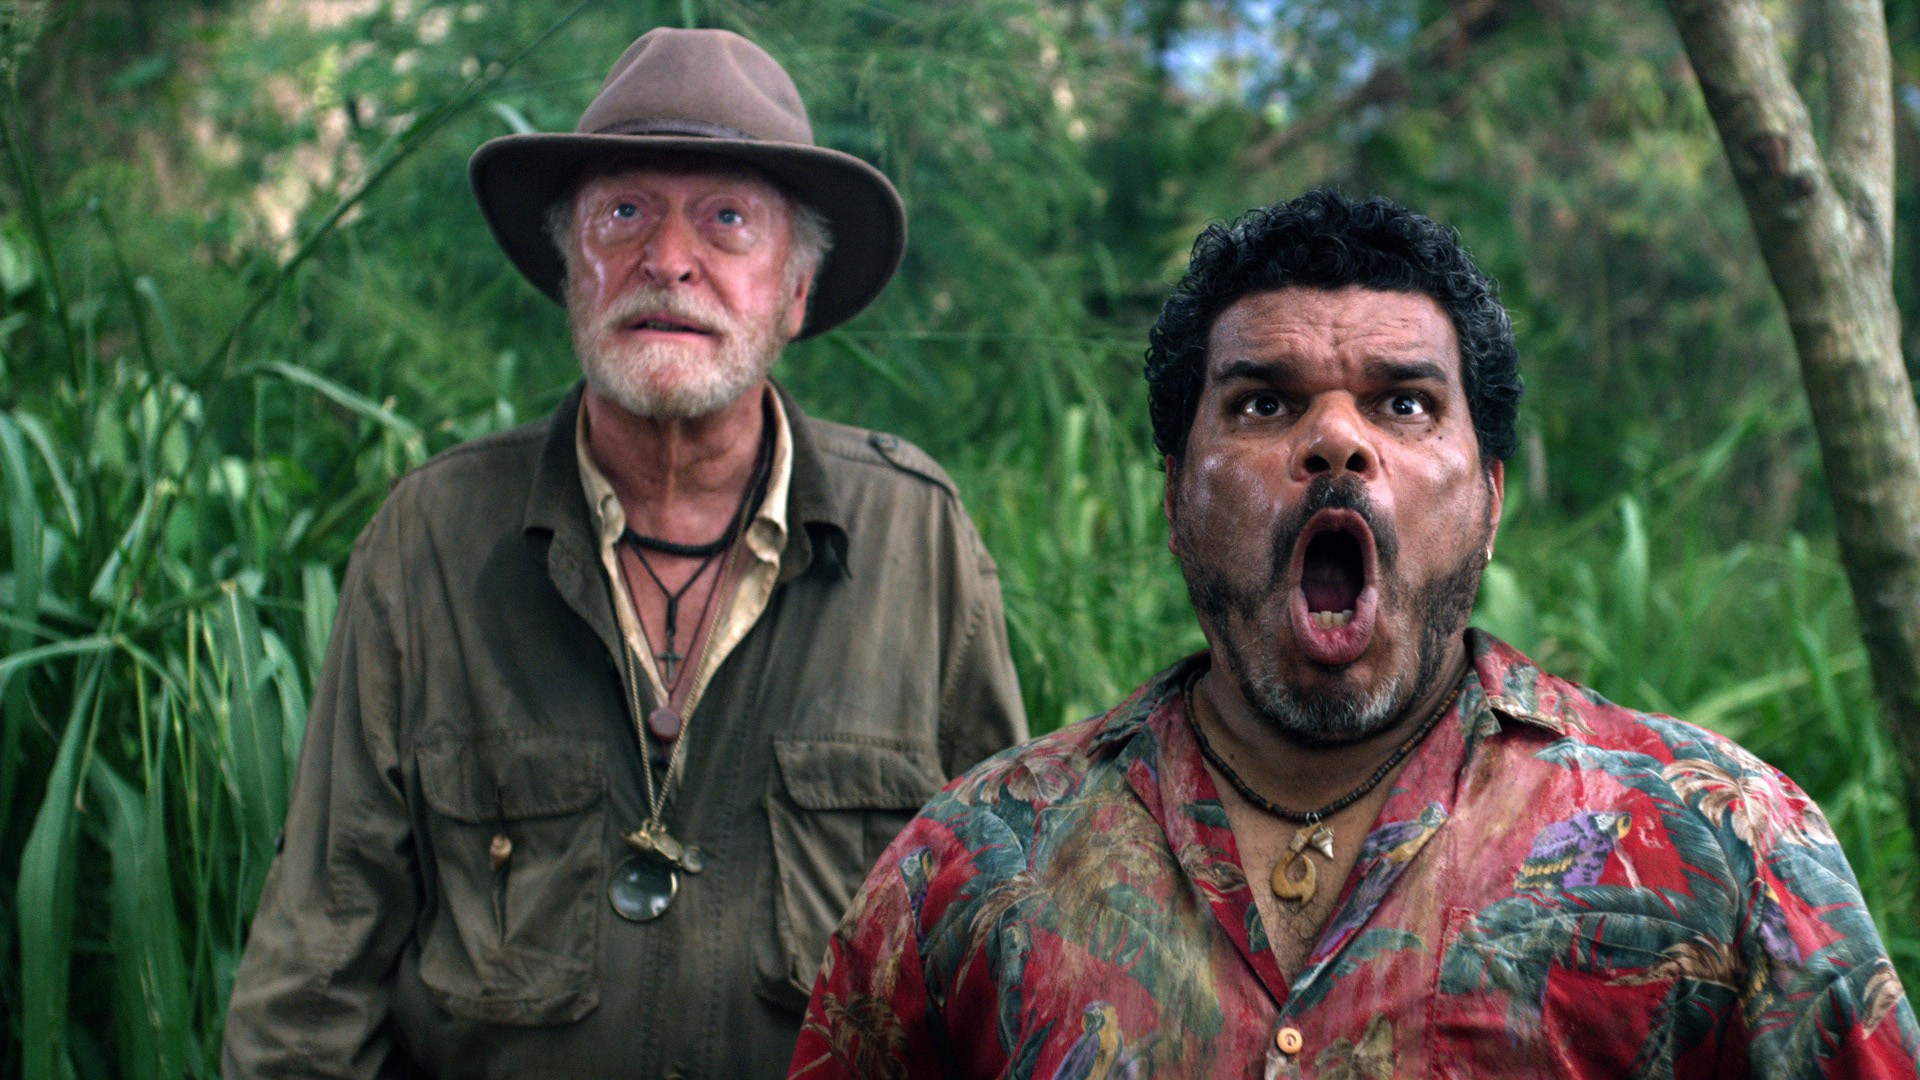 Michael Caine and Luis Guzmán in Journey 2: The Mysterious Island (2012)